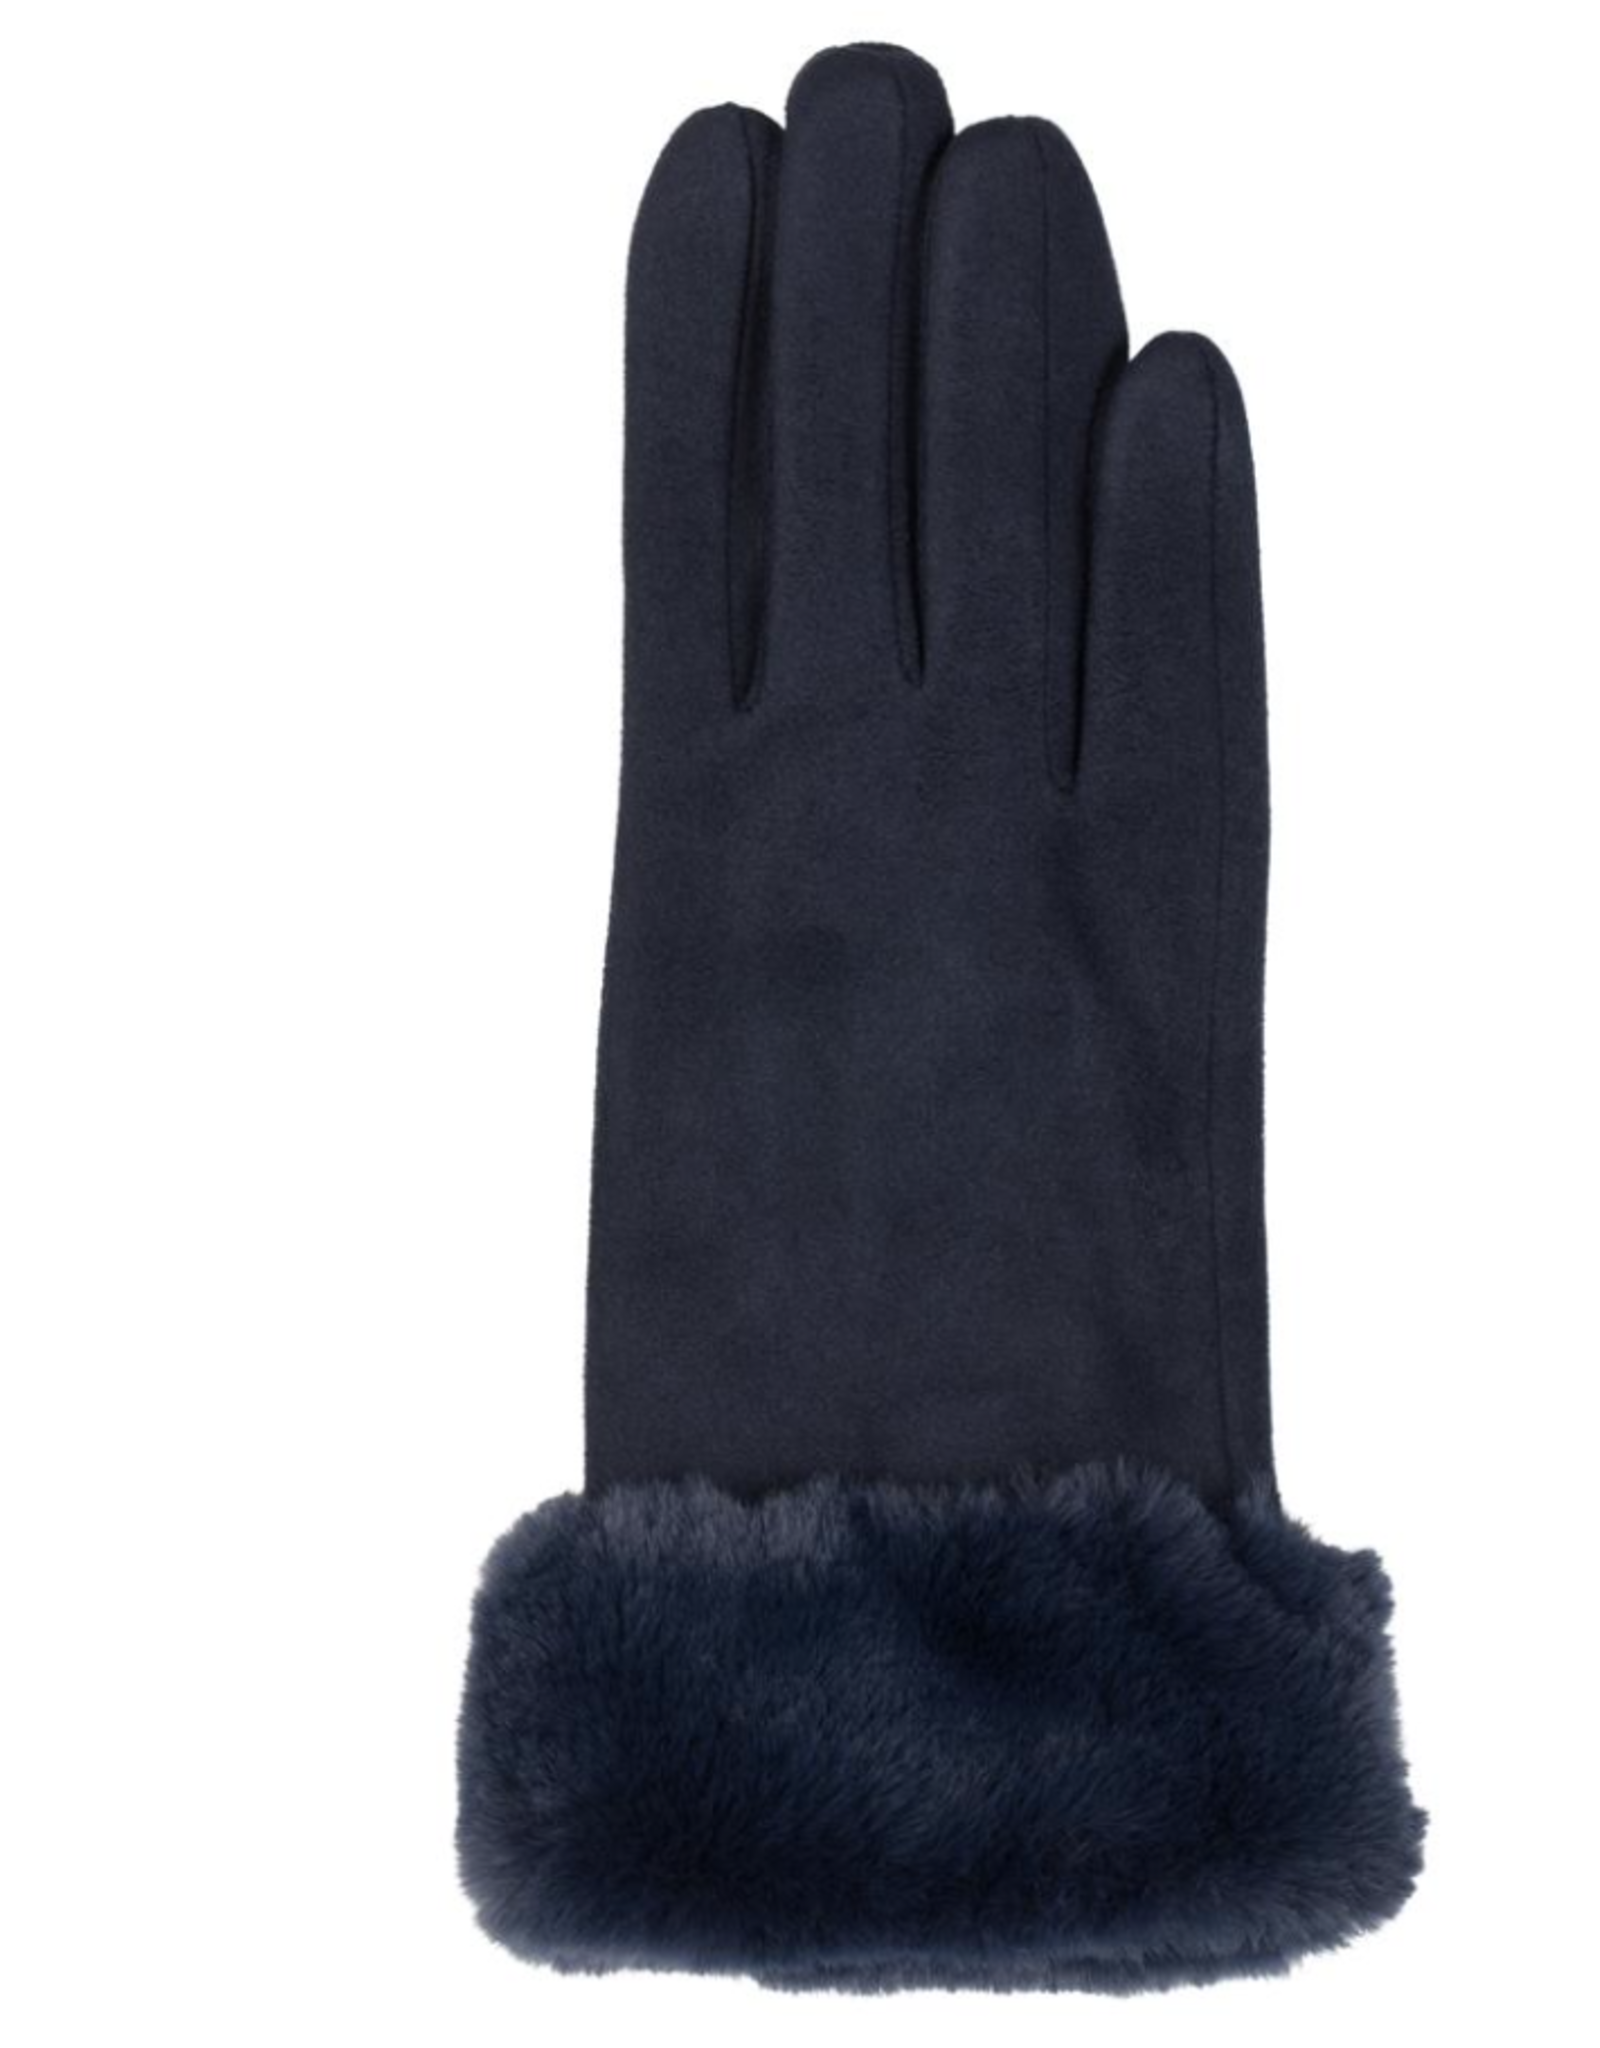 TOP IT OFF Kinsey Gloves - Navy with Fur Cuff